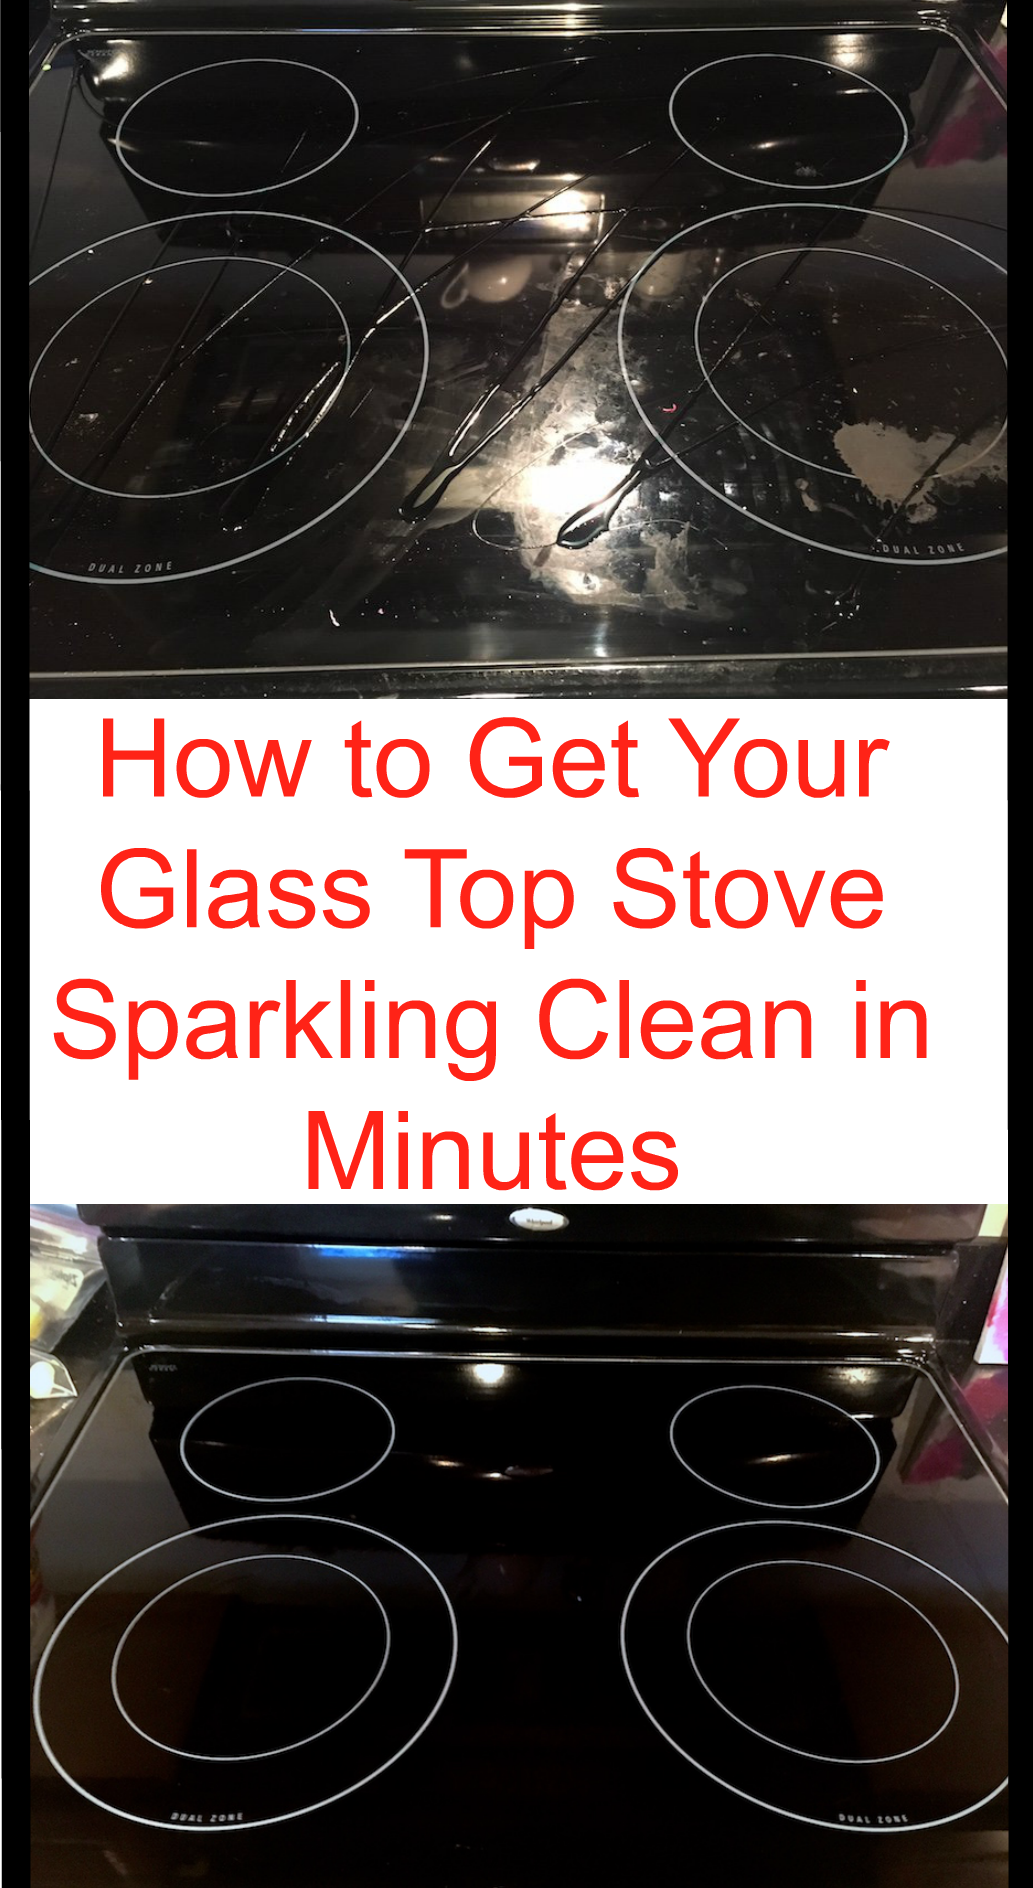 How to Get Your Glass Stovetop Sparkling Clean in Minutes | Stove ...